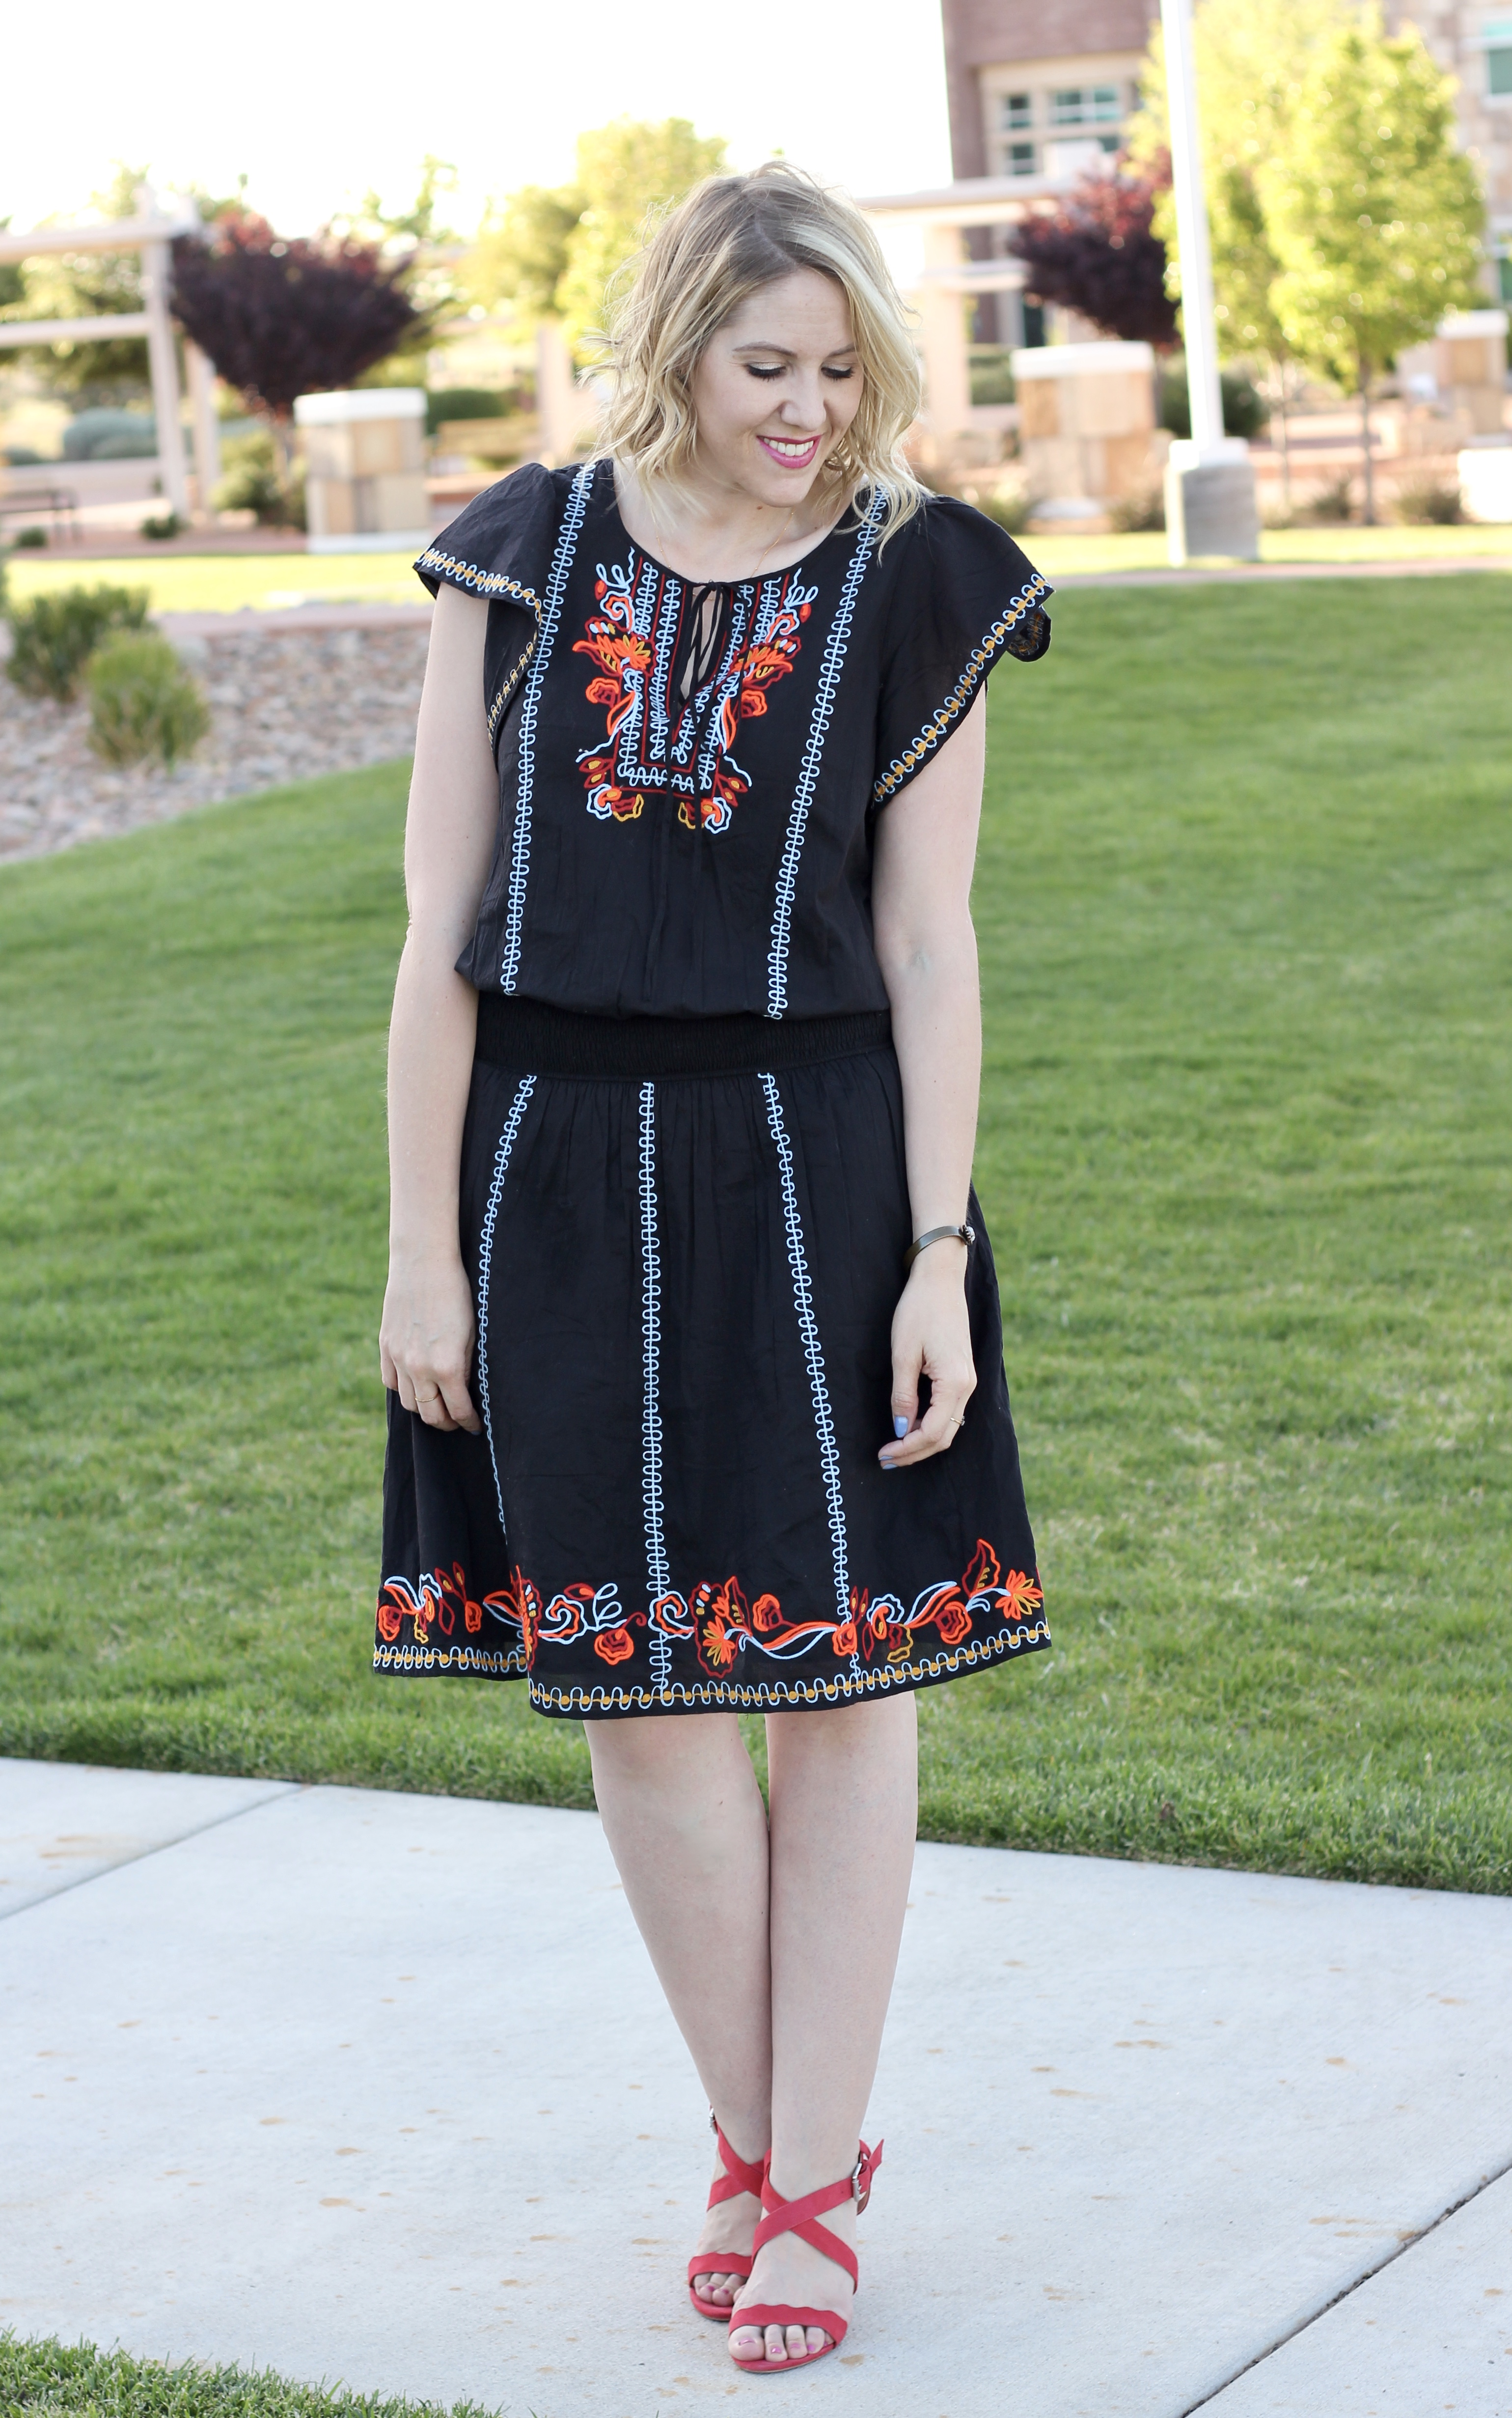 fun and colorful spring dress